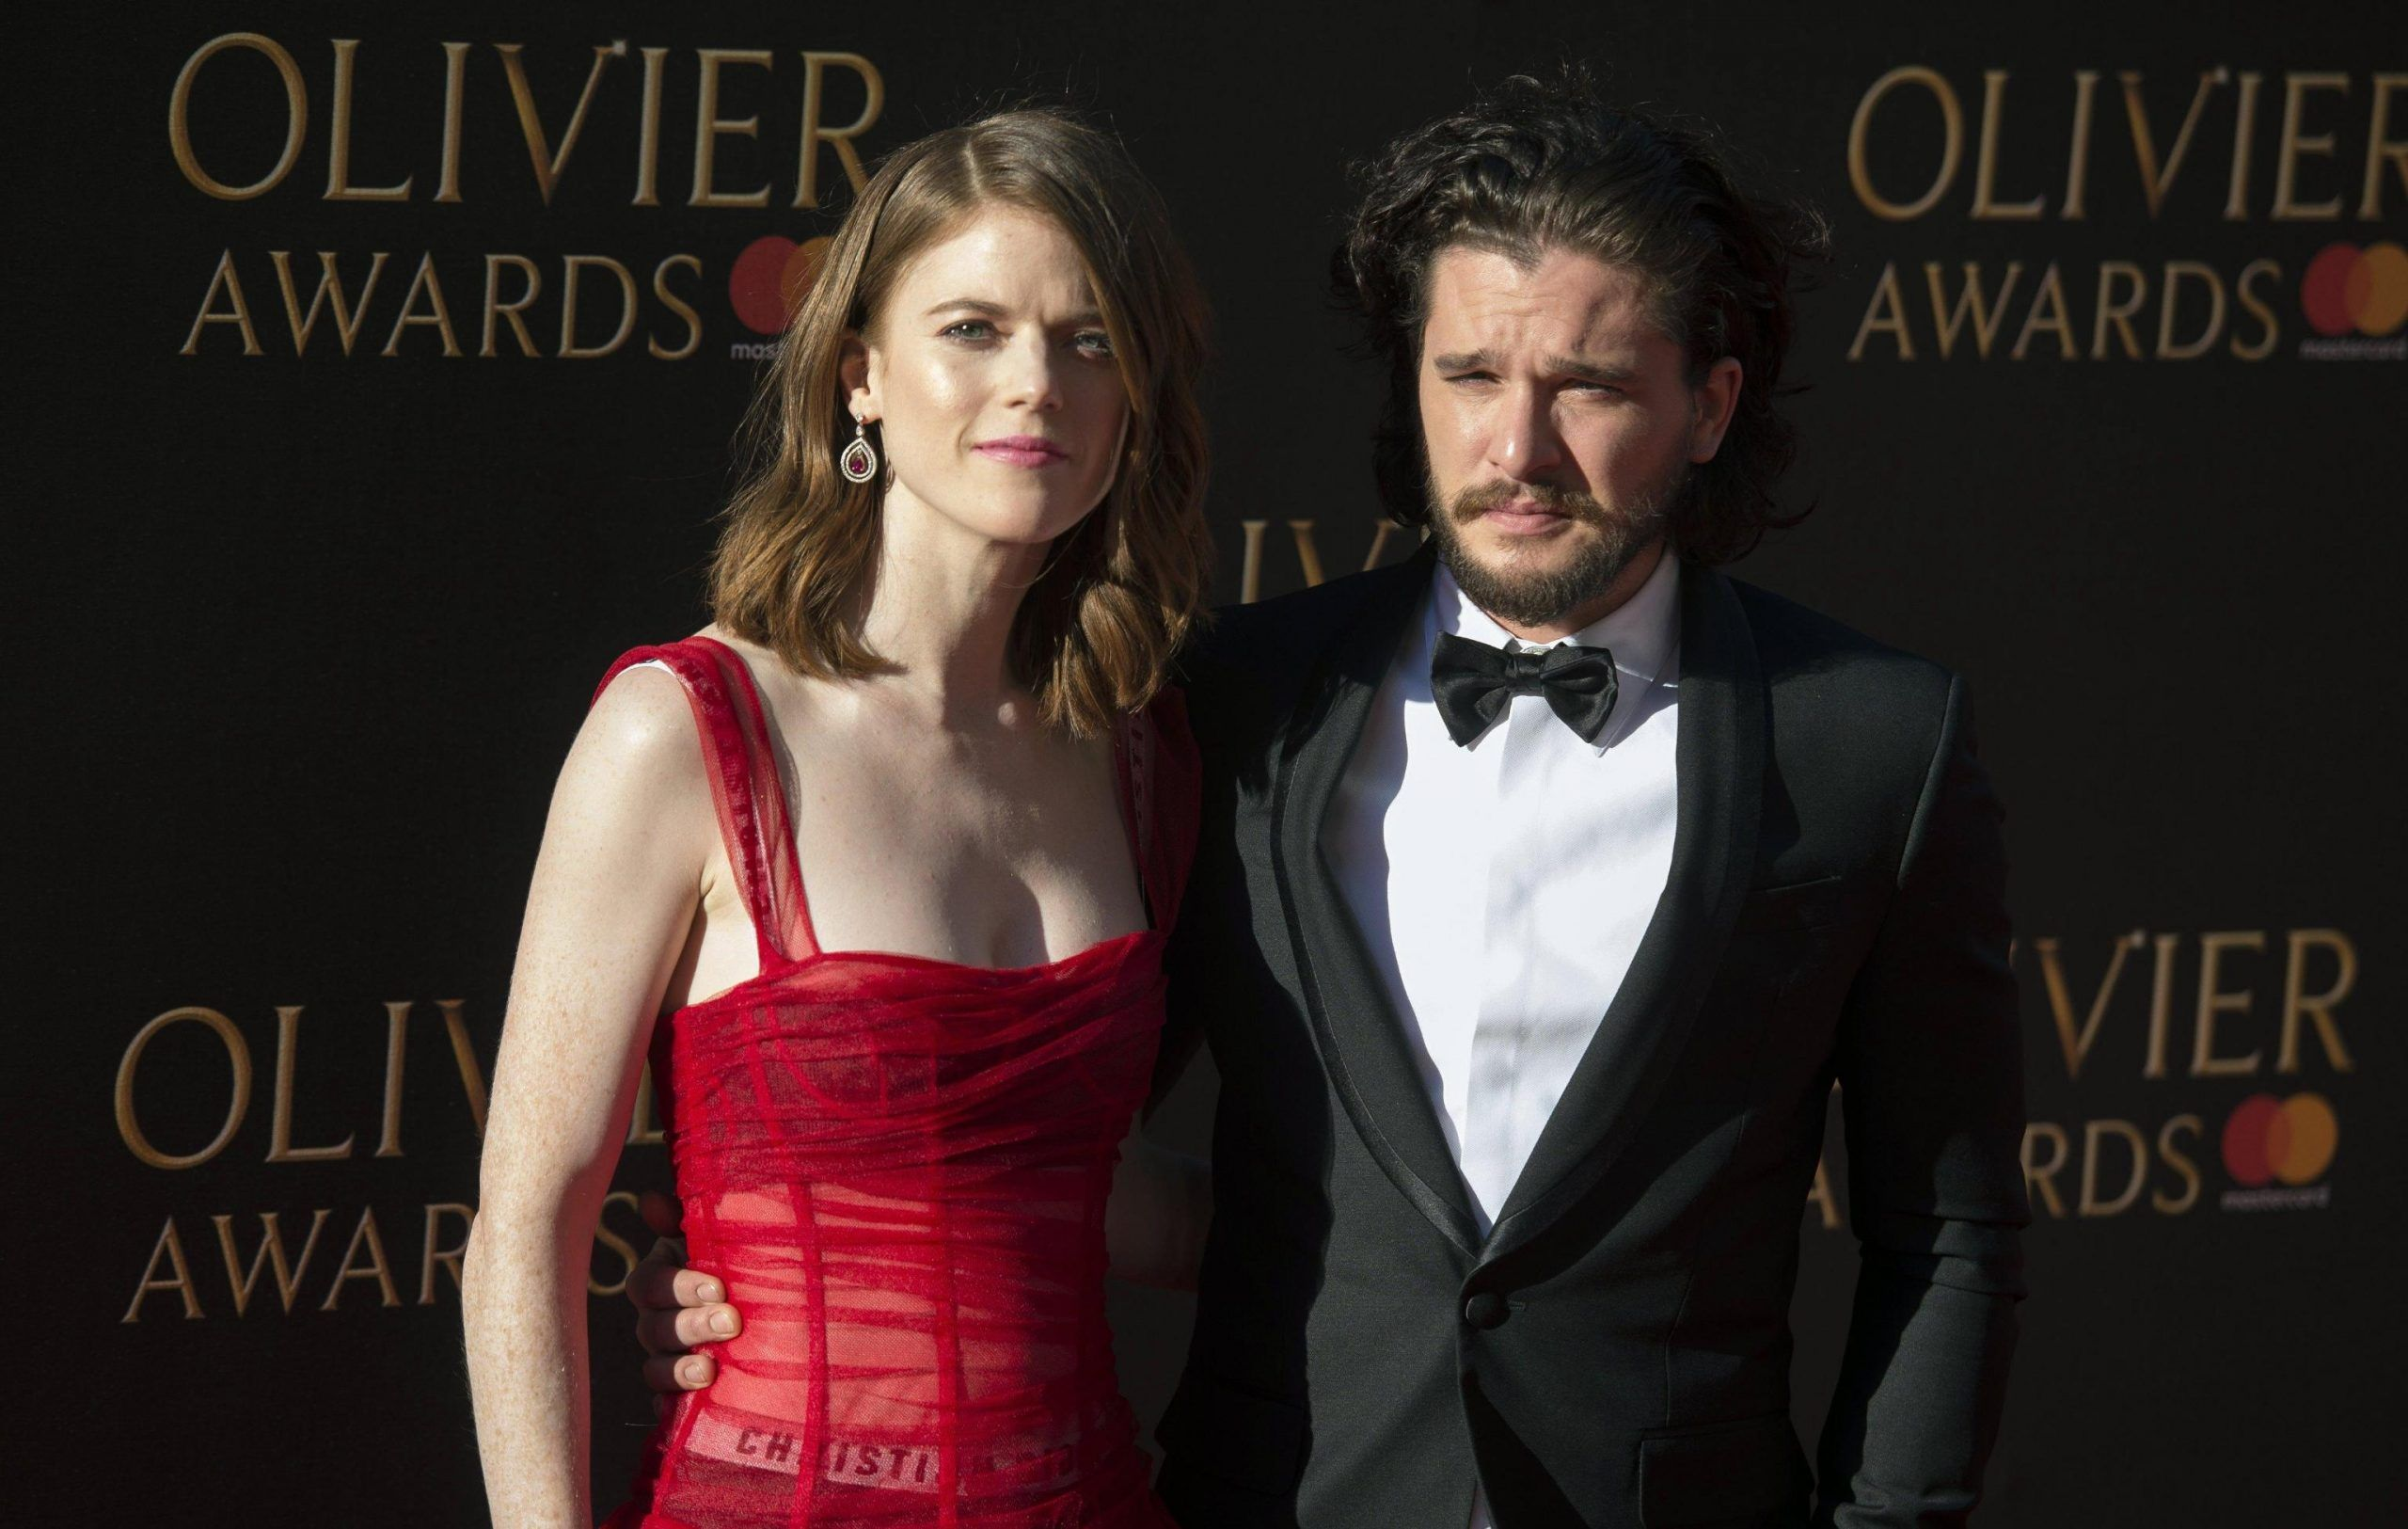 Kit Harington e Rose Leslie, matrimonio in arrivo? I due attori di Game of Thrones per ora convivono